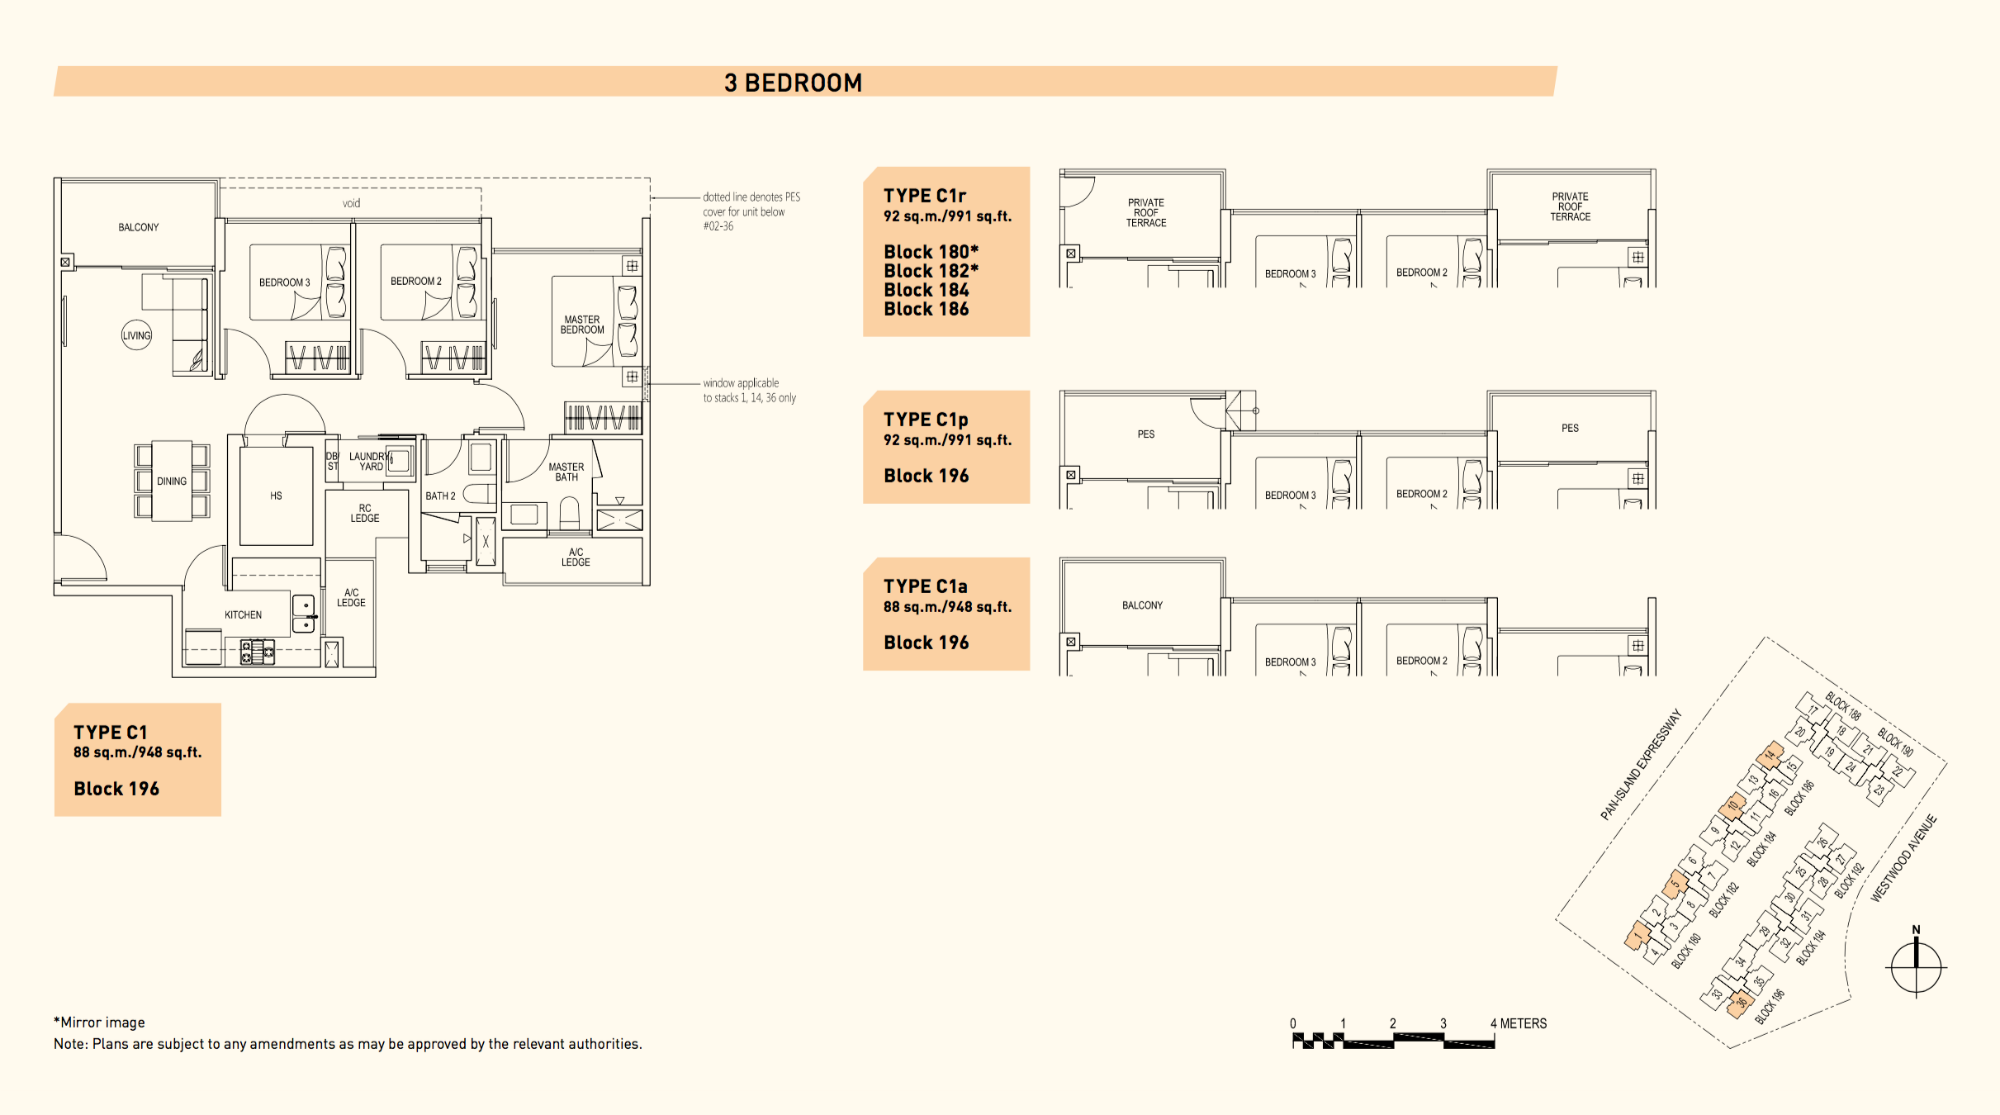 Westwood Residences EC Floor Plan 3 Bedroom C1 88 sqm 948 sqft